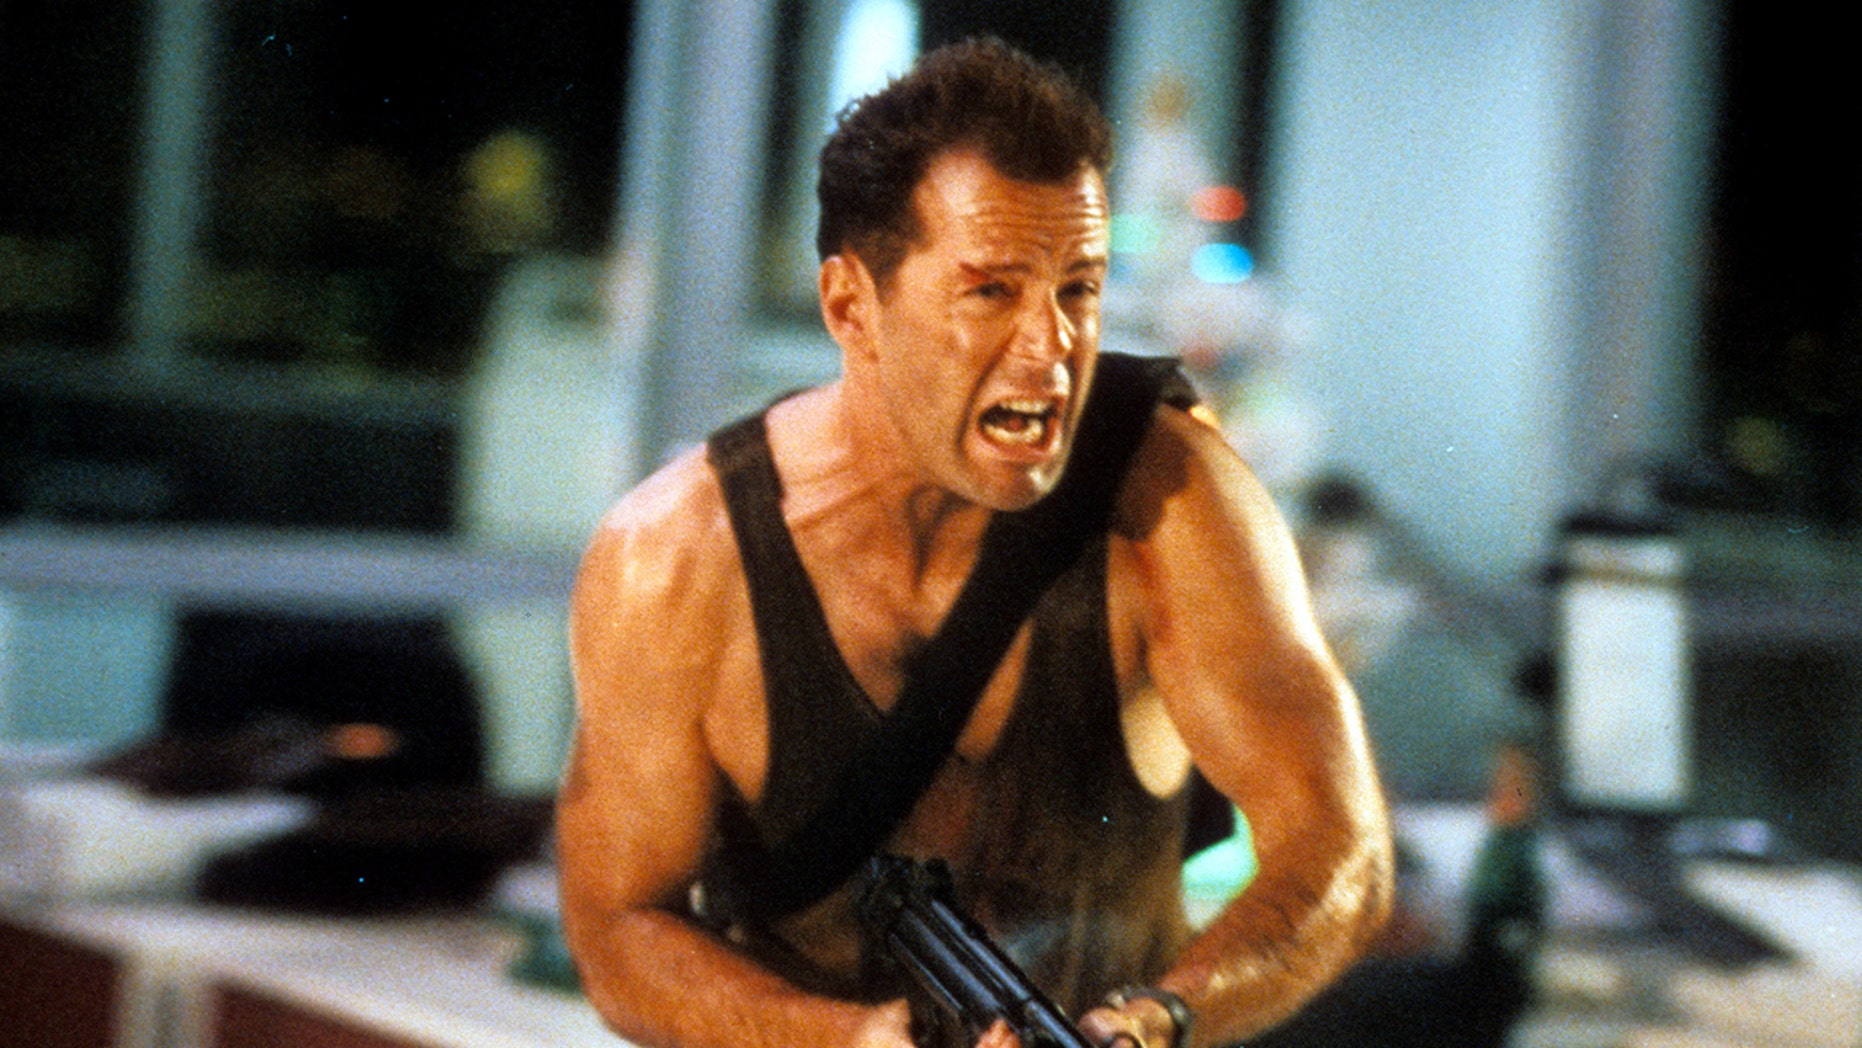 Bruce Willis will reprise his role as John McClane for the sixth time in an upcoming film.